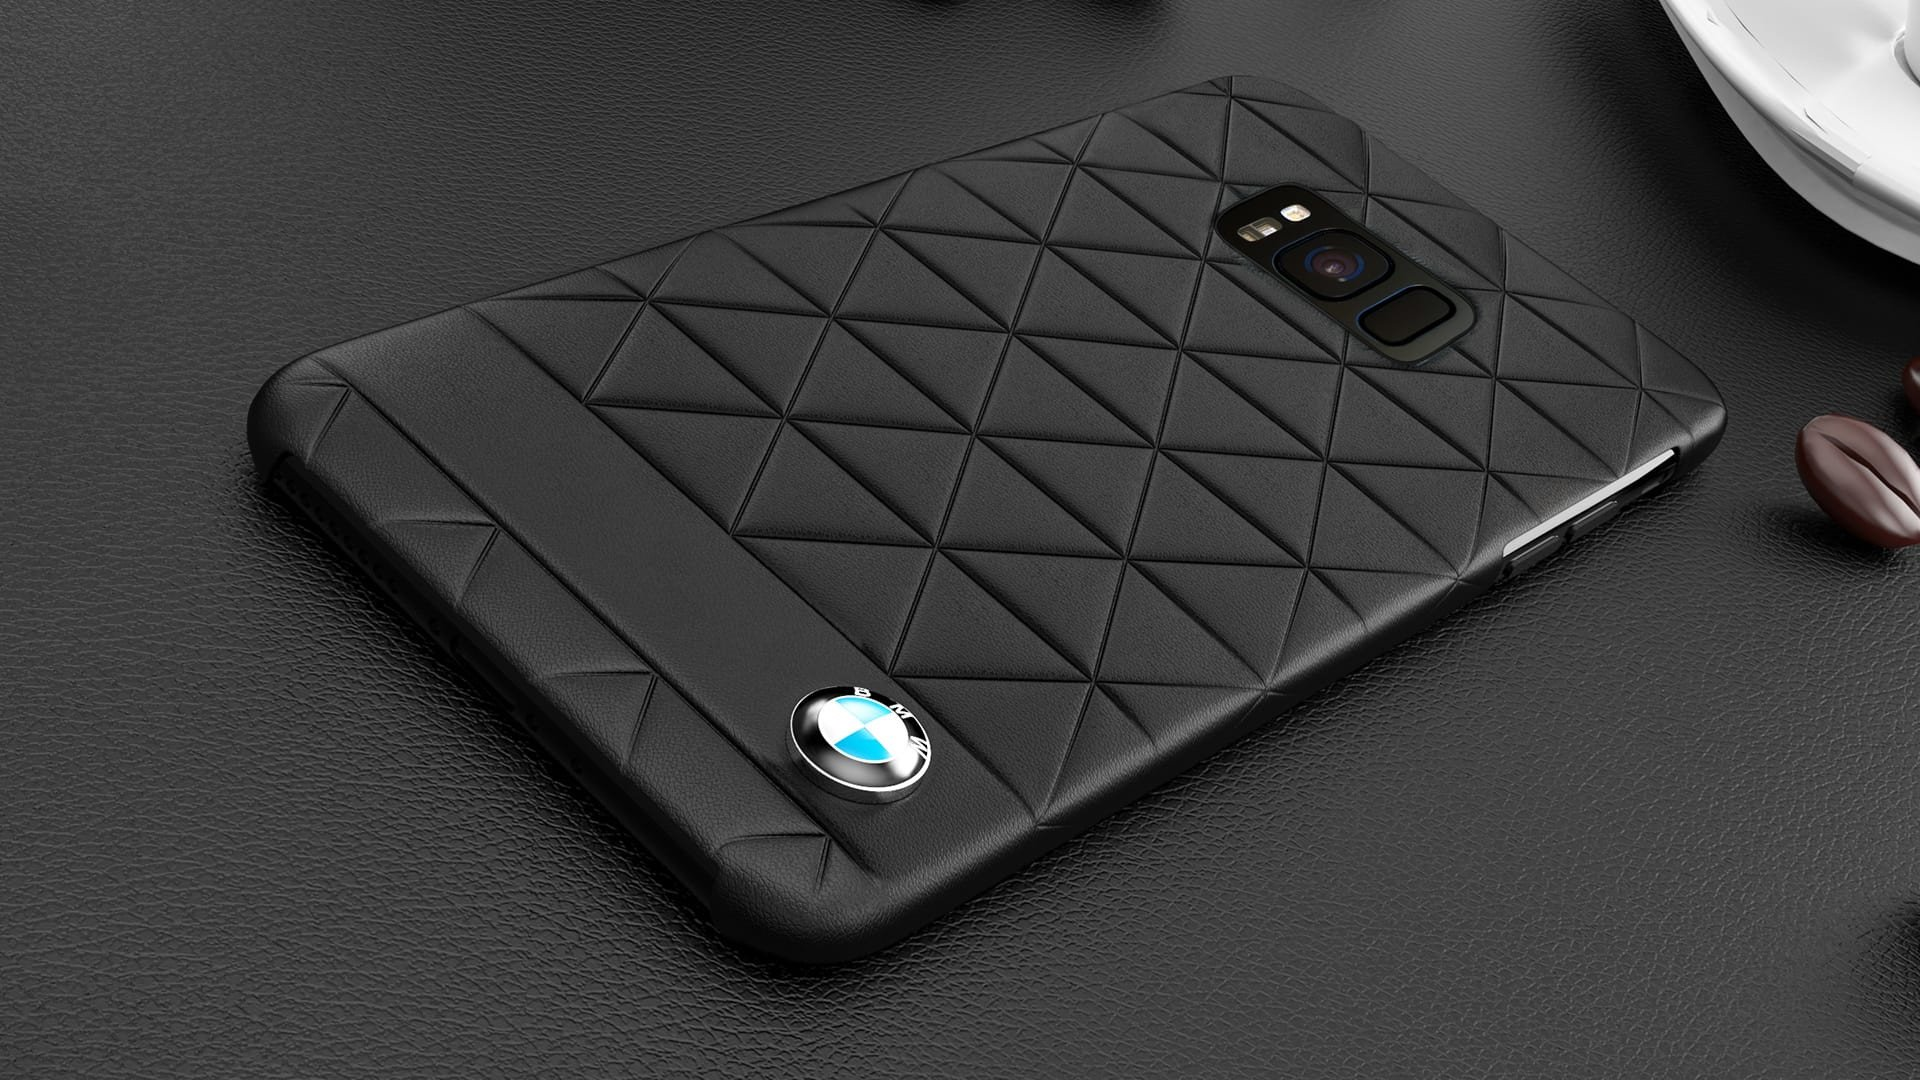 info for 6f8f9 ebc17 BMW ® Samsung S8 PLUS Official Superstar zDRIVE Leather Case Limited  Edition Back Cover